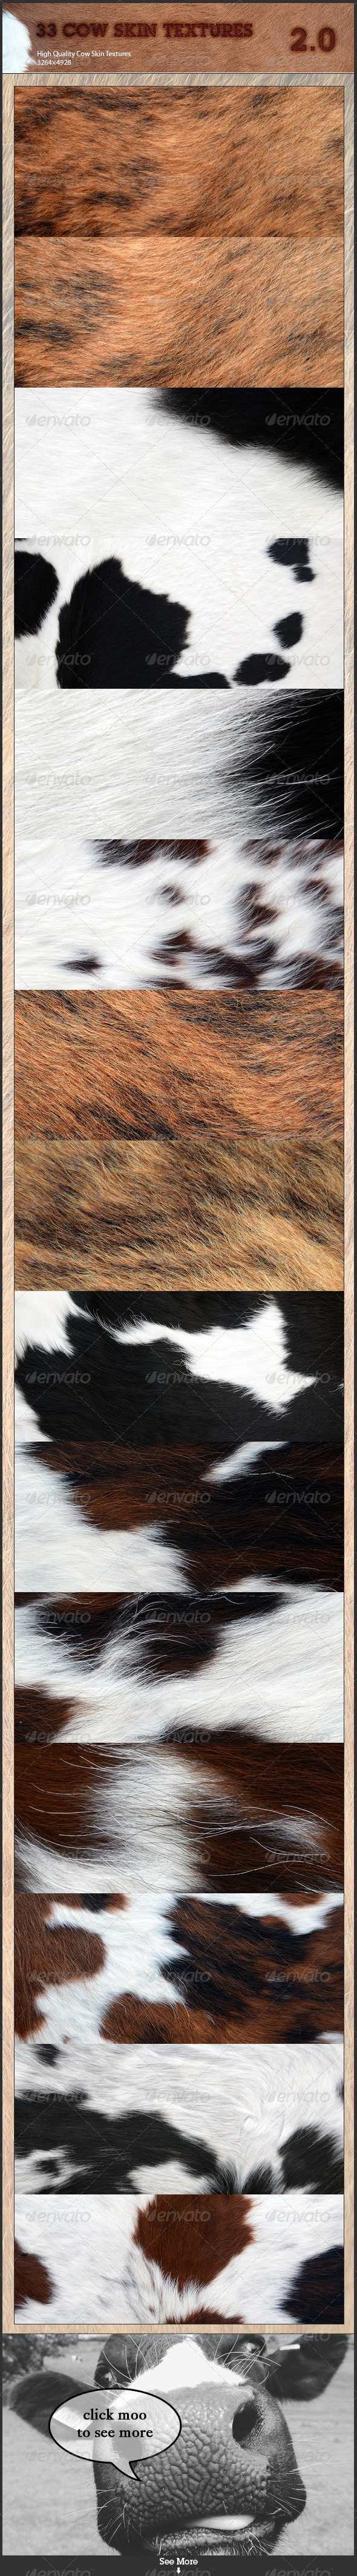 Cow Skin Pack 2 - Fabric Textures